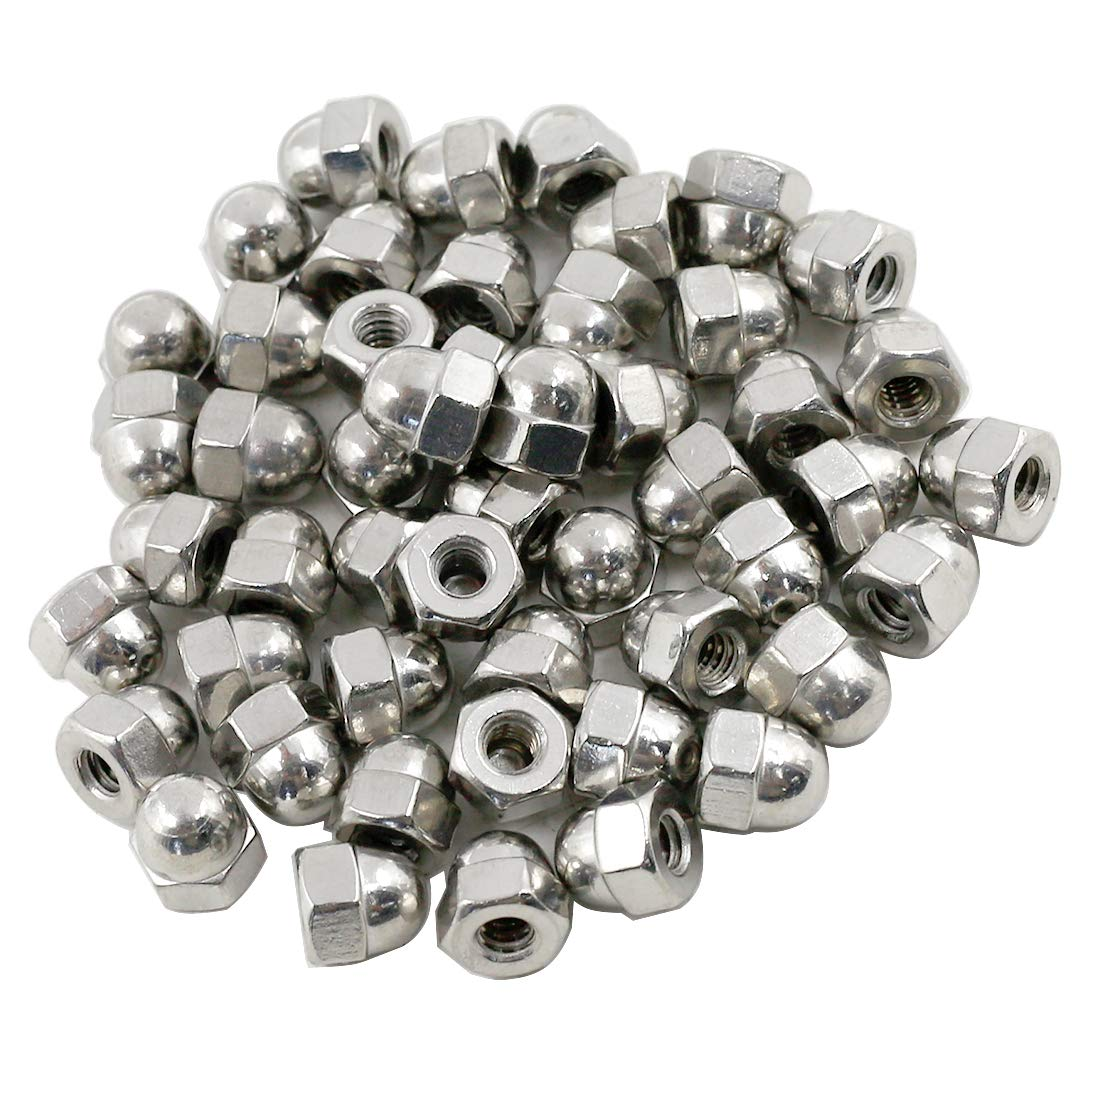 TOHIA 50pcs #10-24 Acorn Nuts Stainless Steel Coarse Thread Hex Cap Nuts